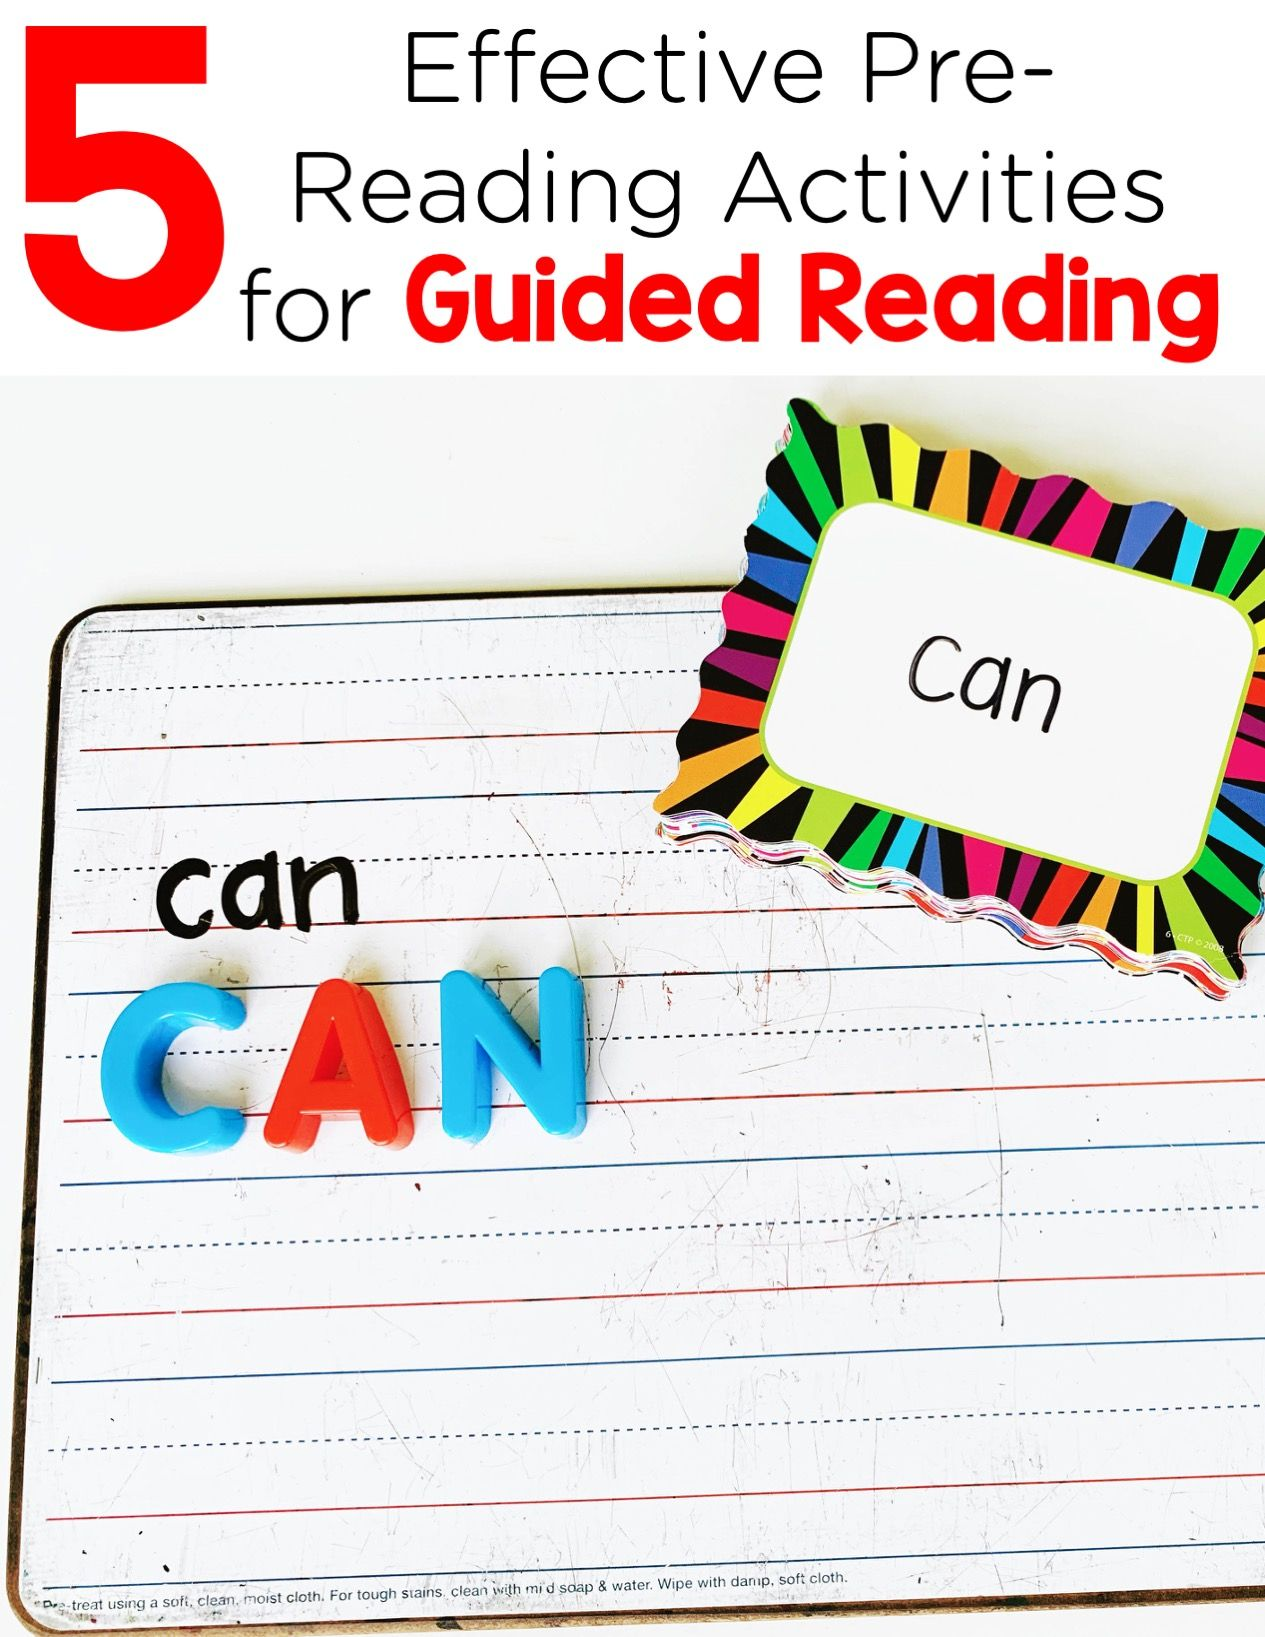 5 Effective Guided Reading Pre Reading Activities To Try Pre Reading Activities Reading Activities Guided Reading What are some pre reading activities